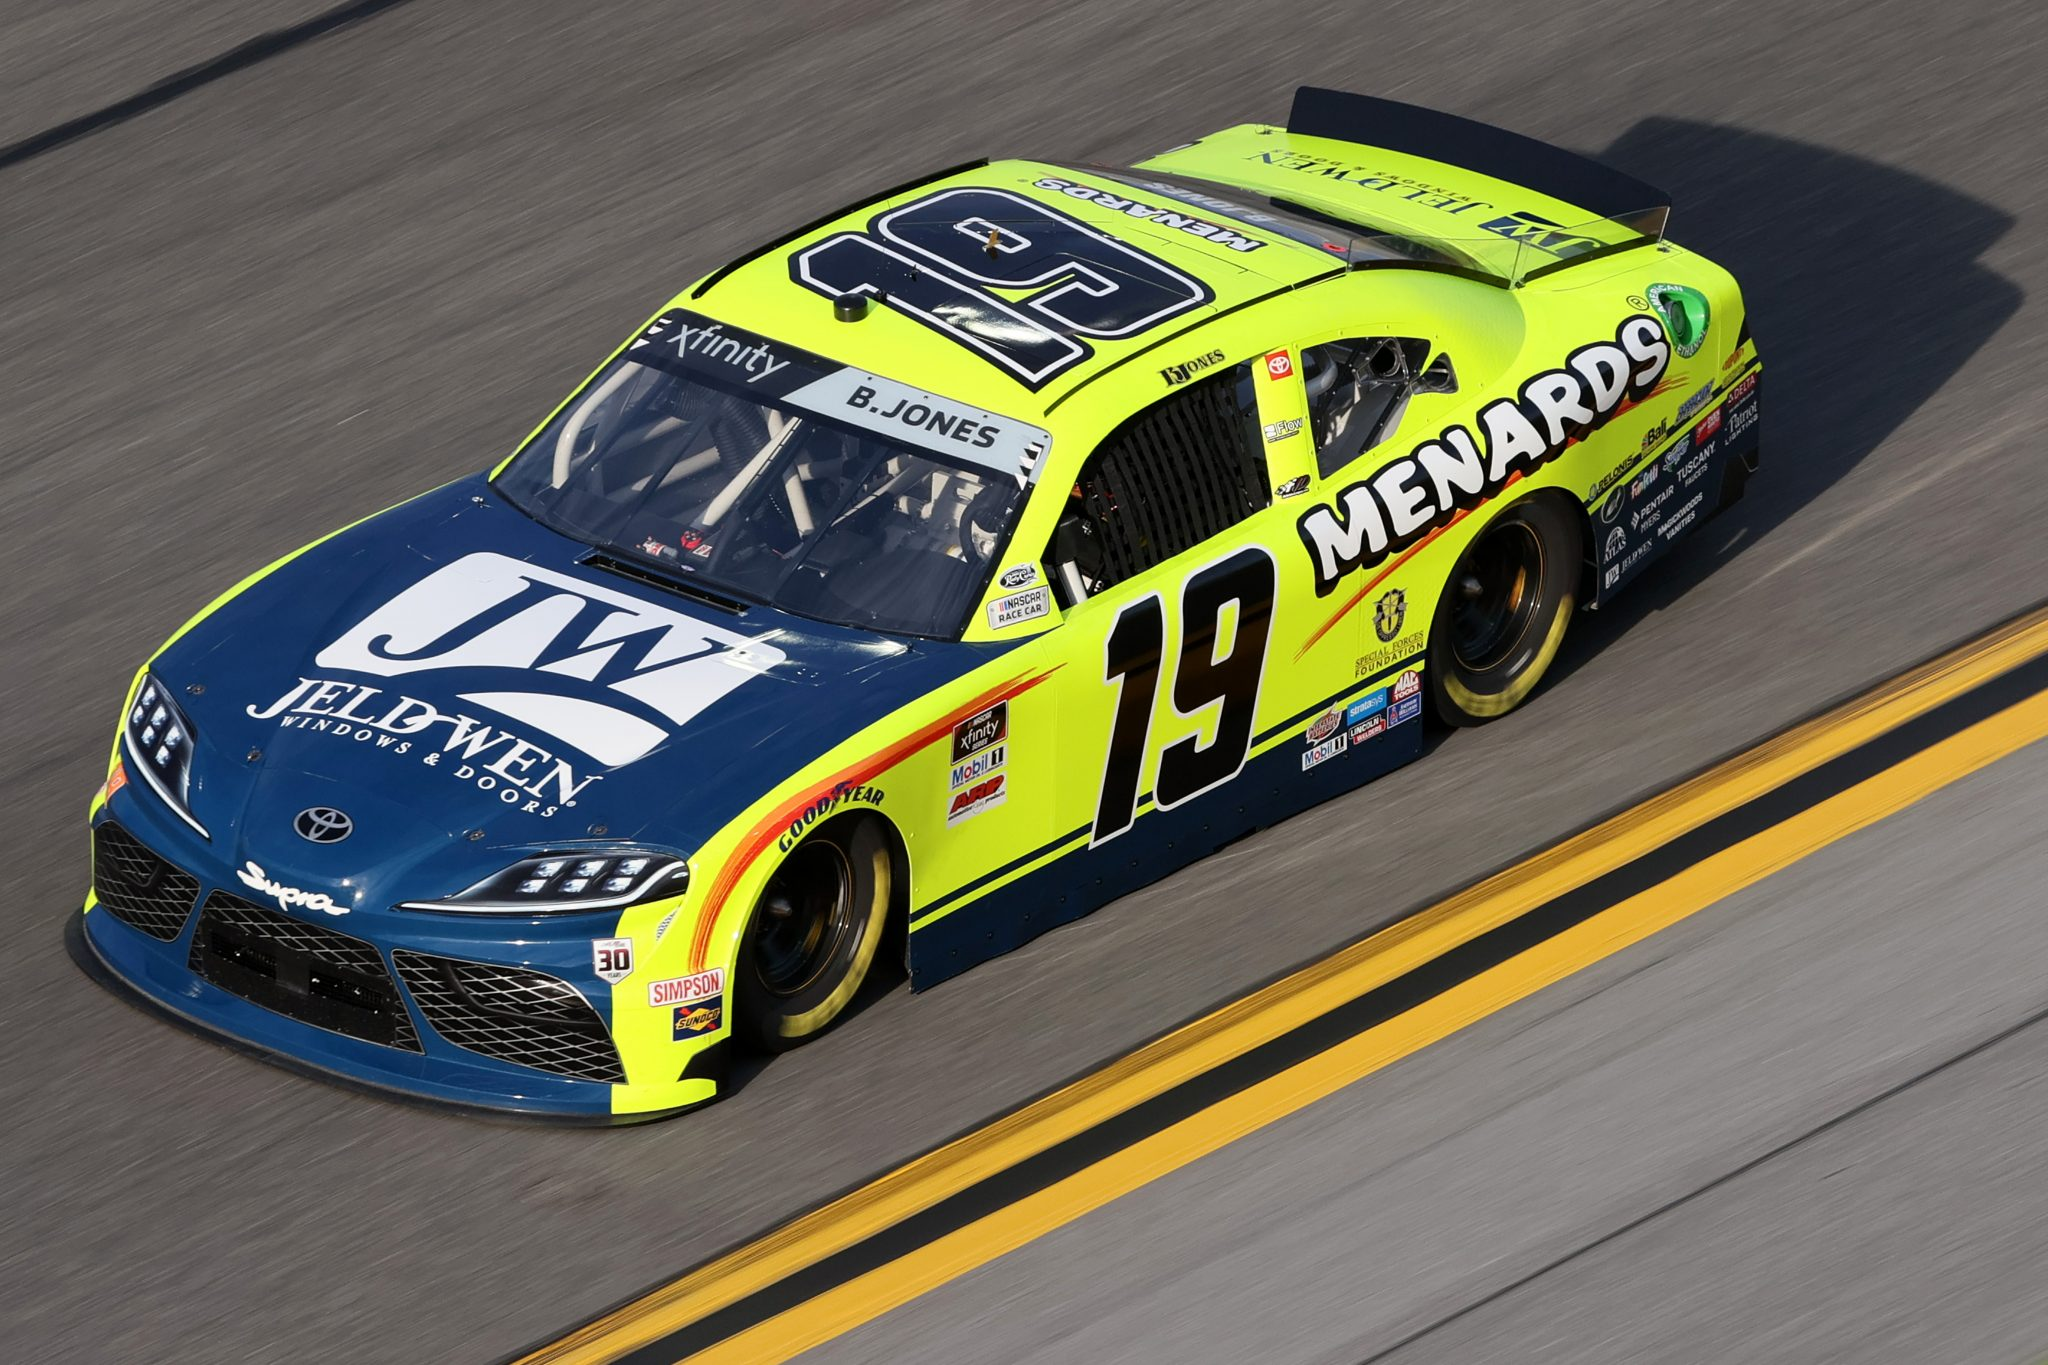 DAYTONA BEACH, FLORIDA - FEBRUARY 12: Brandon Jones, driver of the #19 Menards/Jeld-Wen Toyota, practices for the NASCAR Xfinity Series Beef. It's What's For Dinner. 300 at Daytona International Speedway on February 12, 2021 in Daytona Beach, Florida. (Photo by James Gilbert/Getty Images) | Getty Images